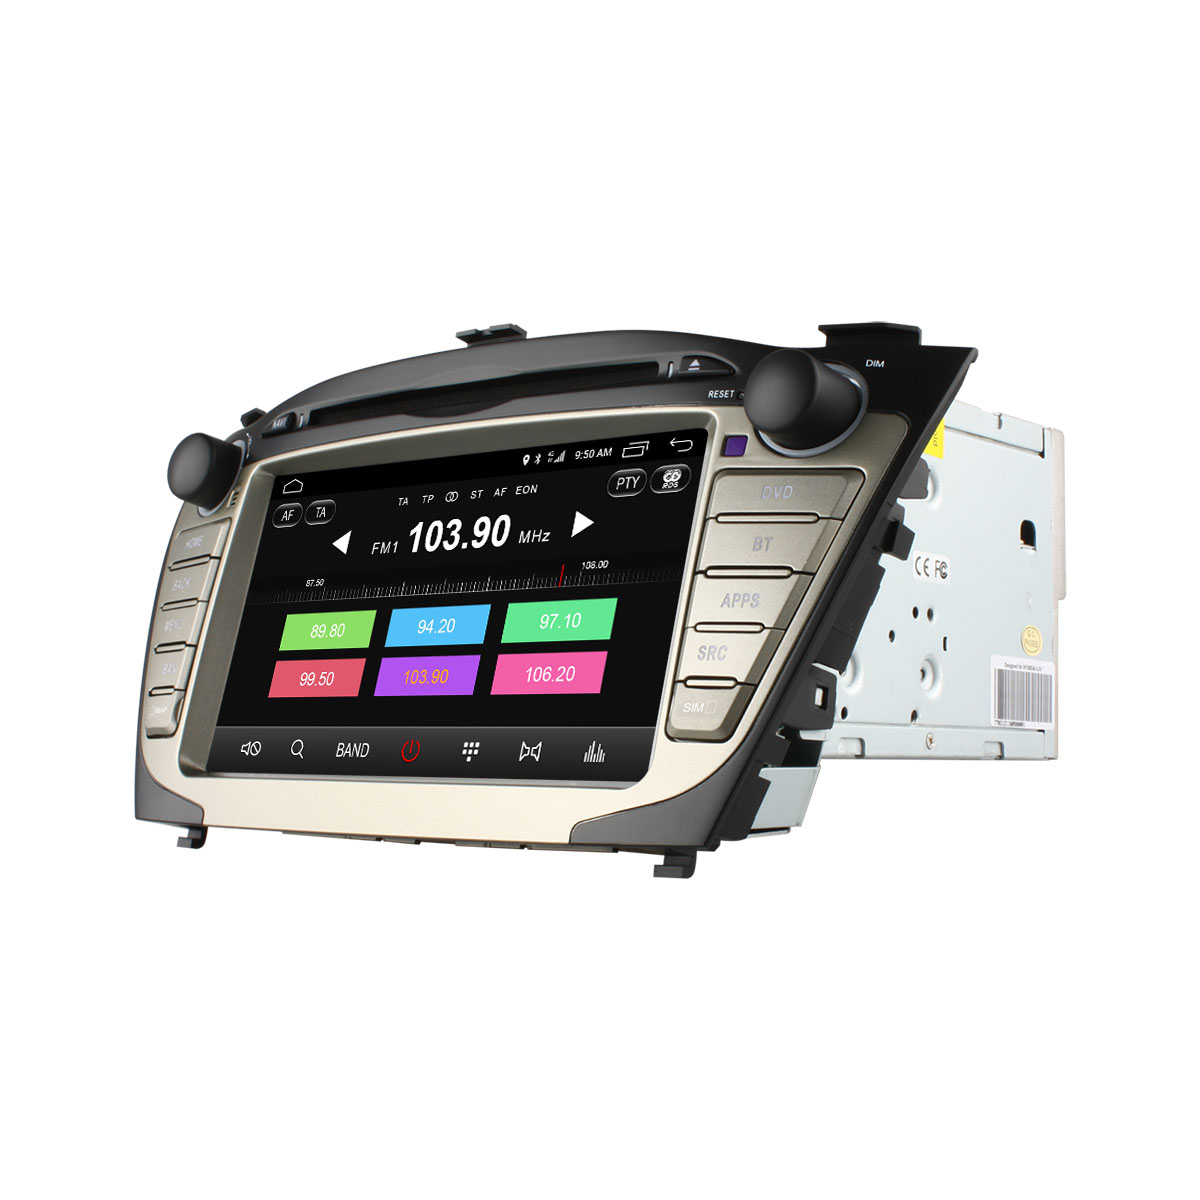 Ownice C500 Android 6 0 Octa 8 Core Car video For HYUNDAI IX35 Tucson car dvd aliexpress com buy ownice c500 android 6 0 octa 8 core car video 3-Way Switch Wiring Diagram for Switch To at suagrazia.org